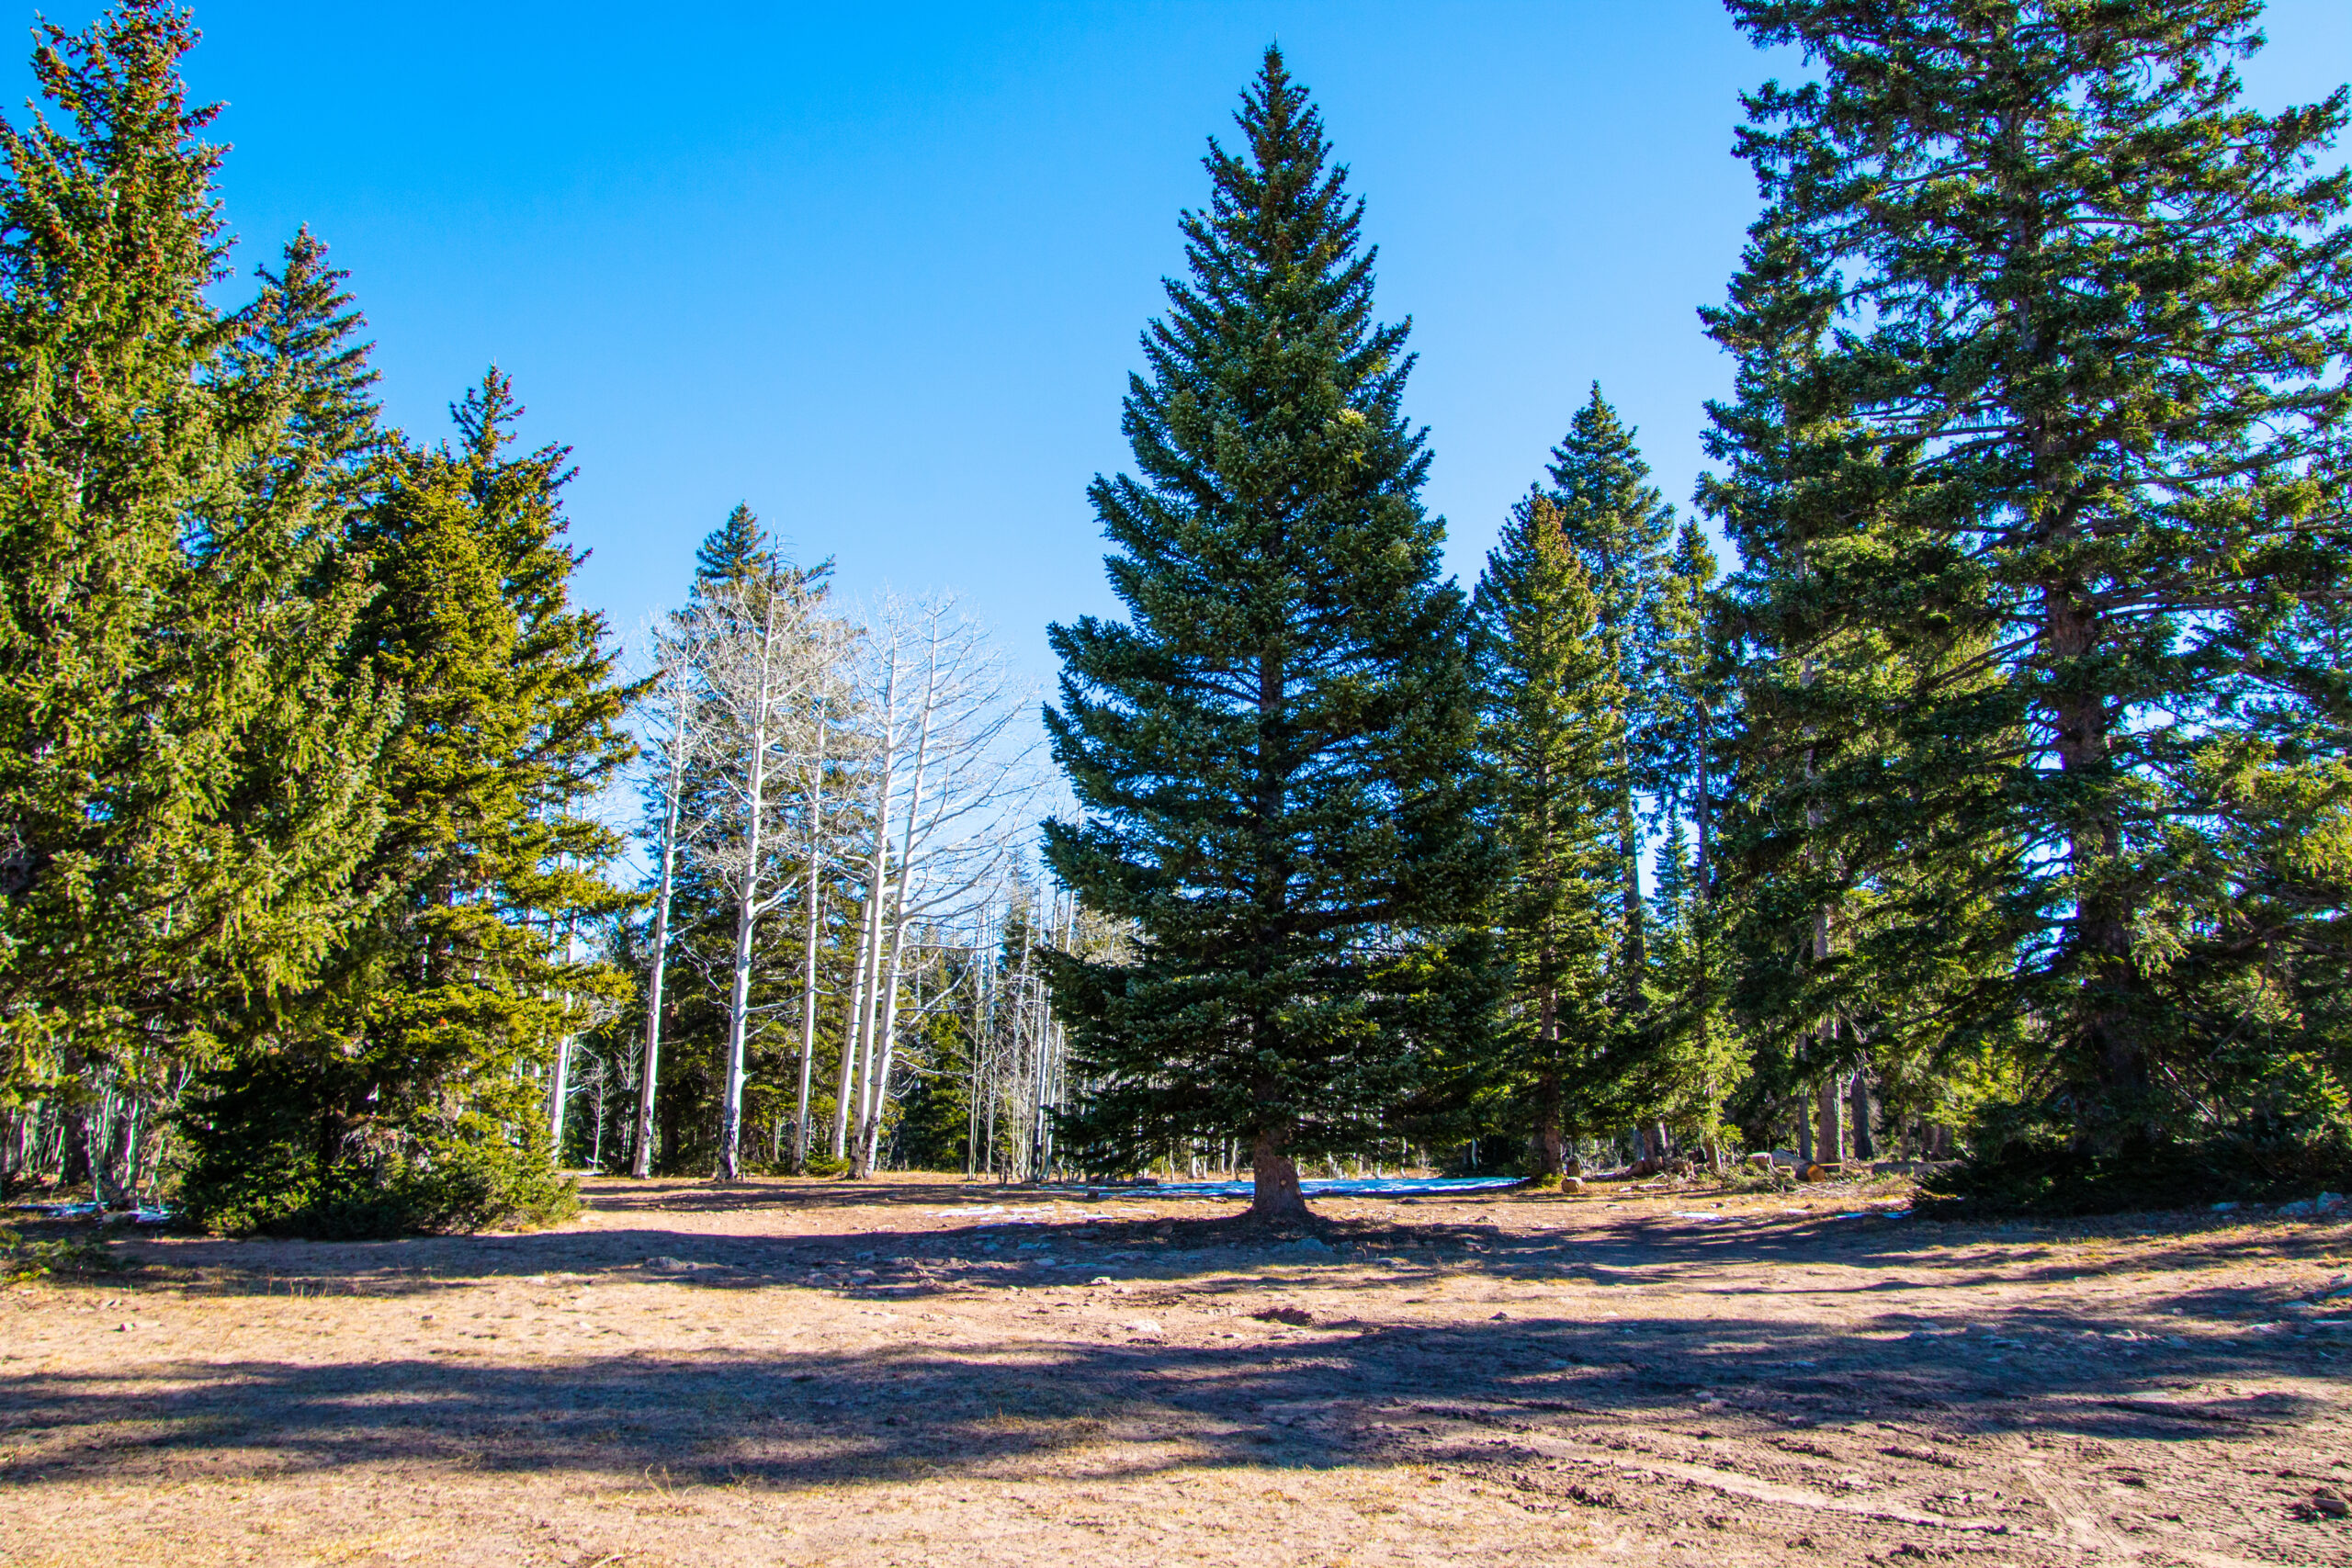 The 82-year-old Engelmann Spruce chosen from Colorado that stands 55 feet tall